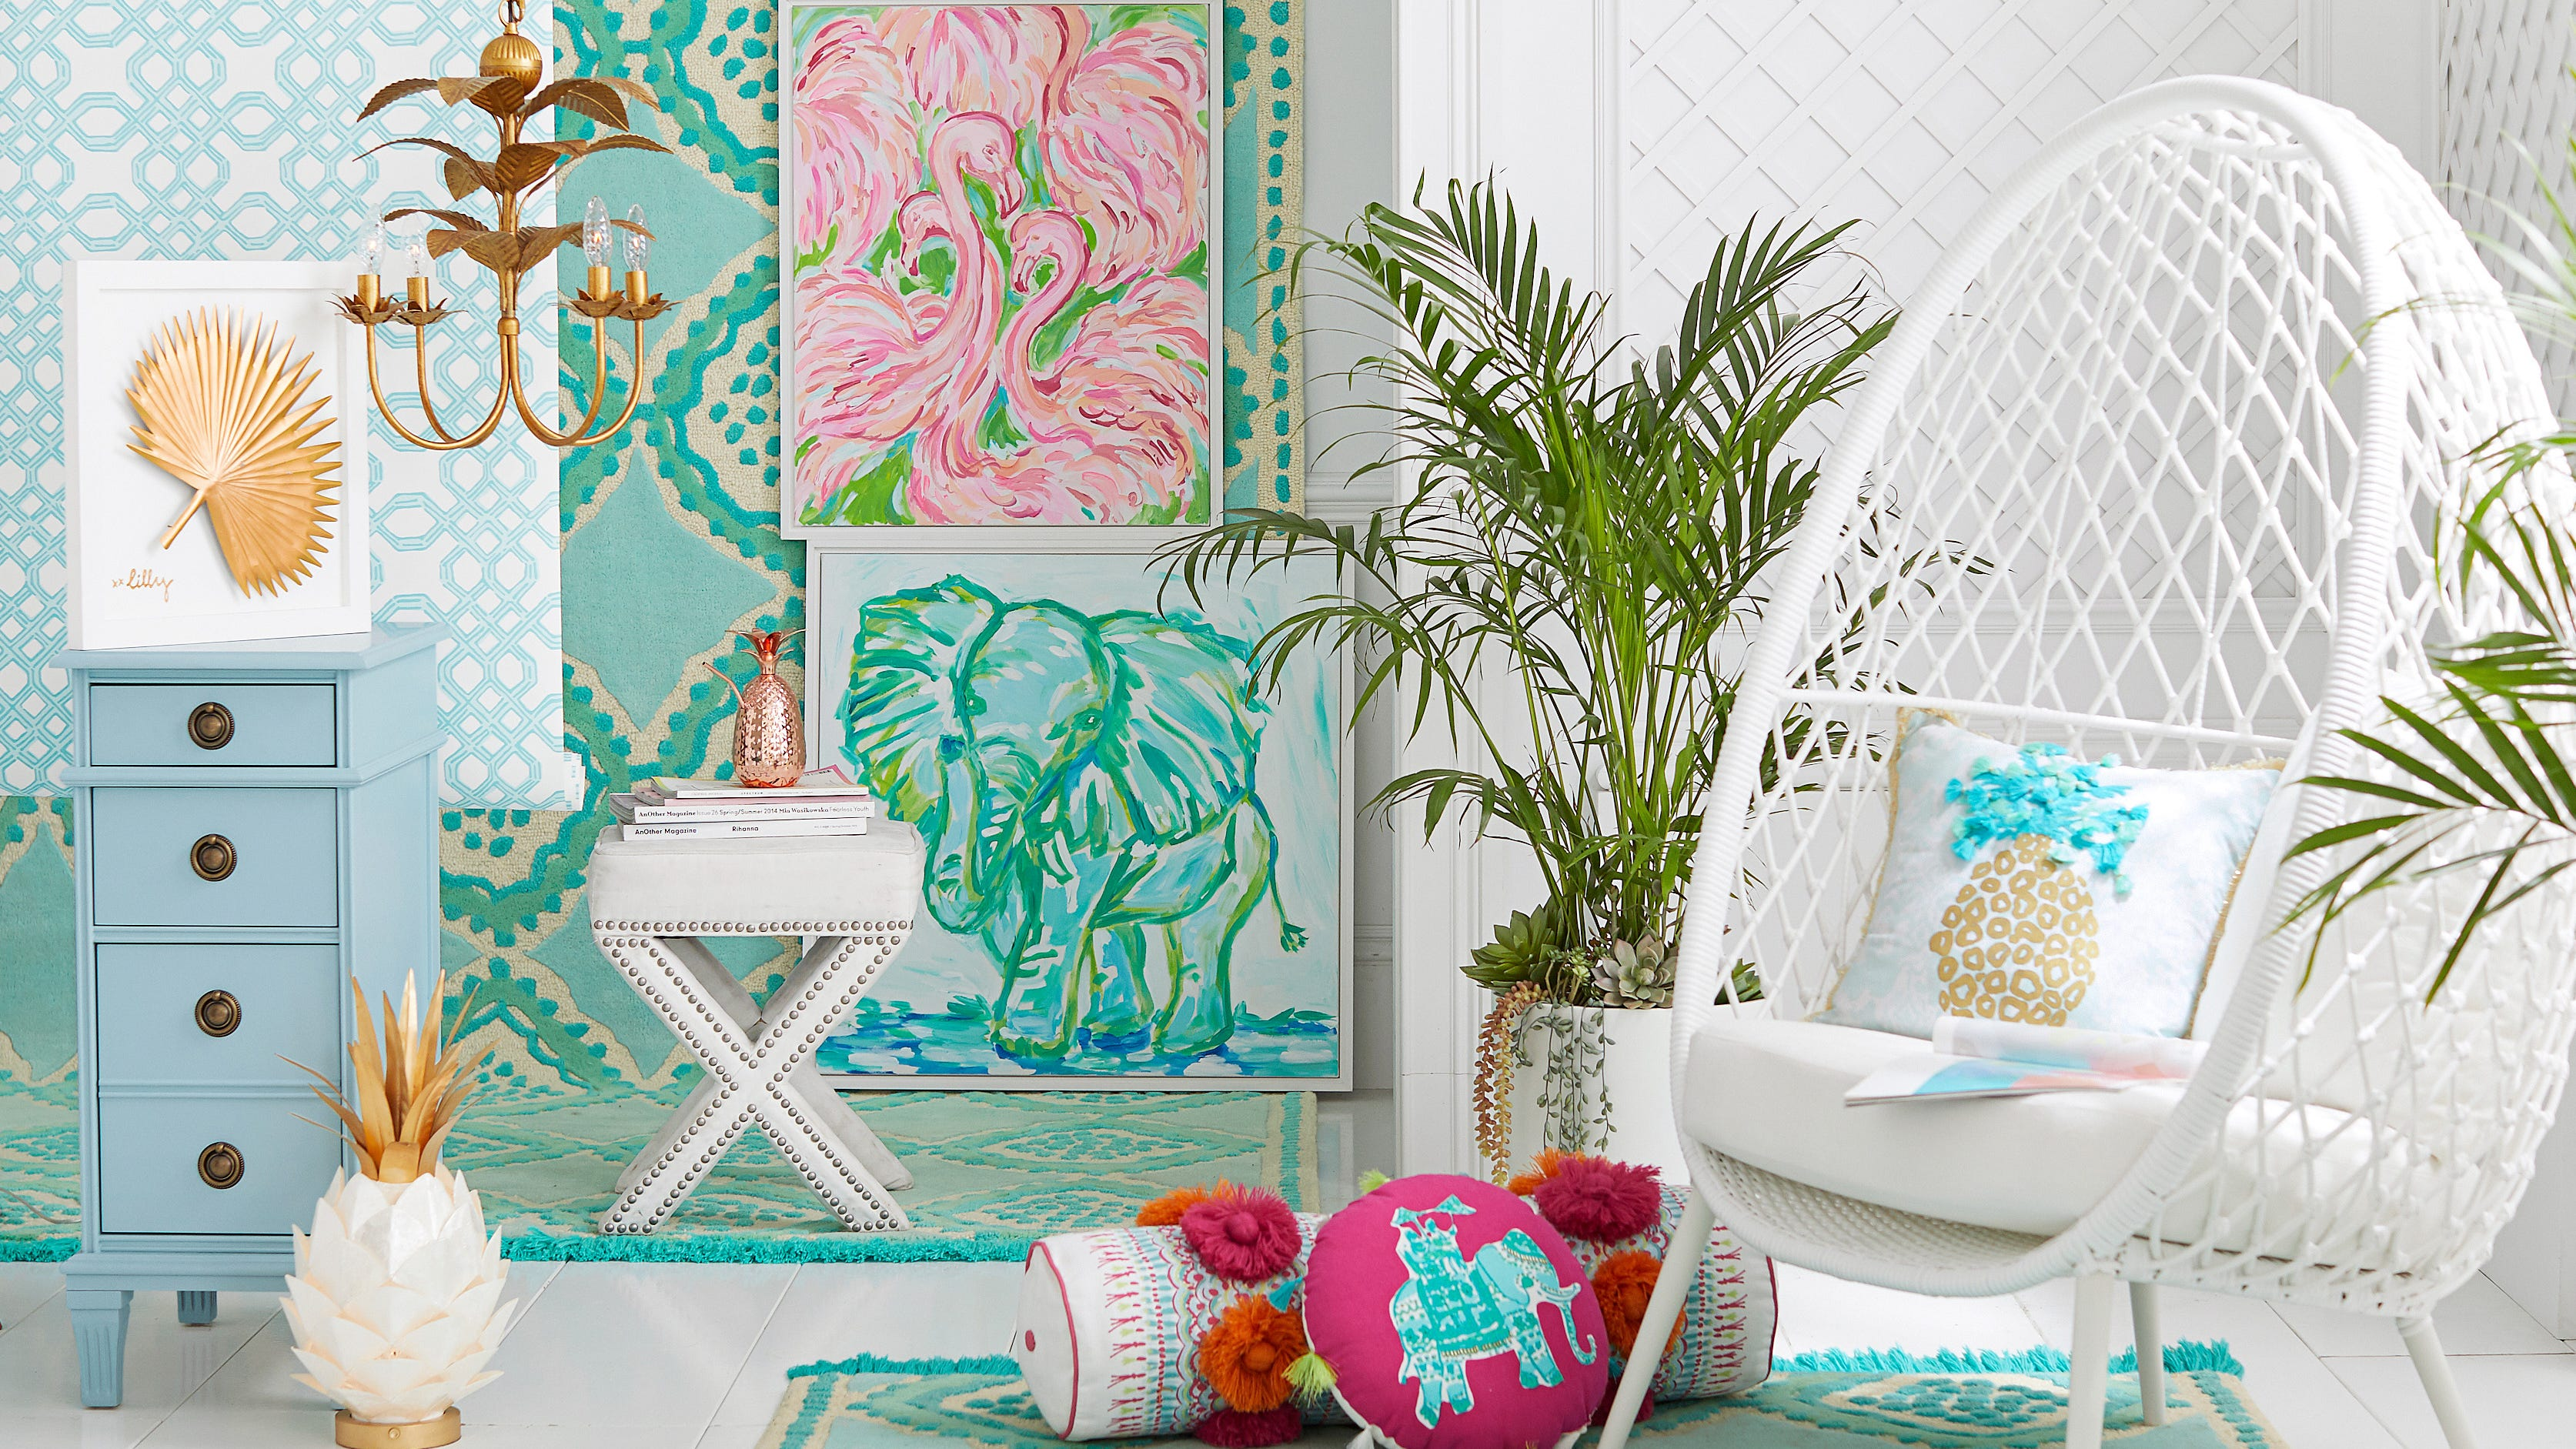 Pottery Barn And Lilly Pulitzer Collaboration